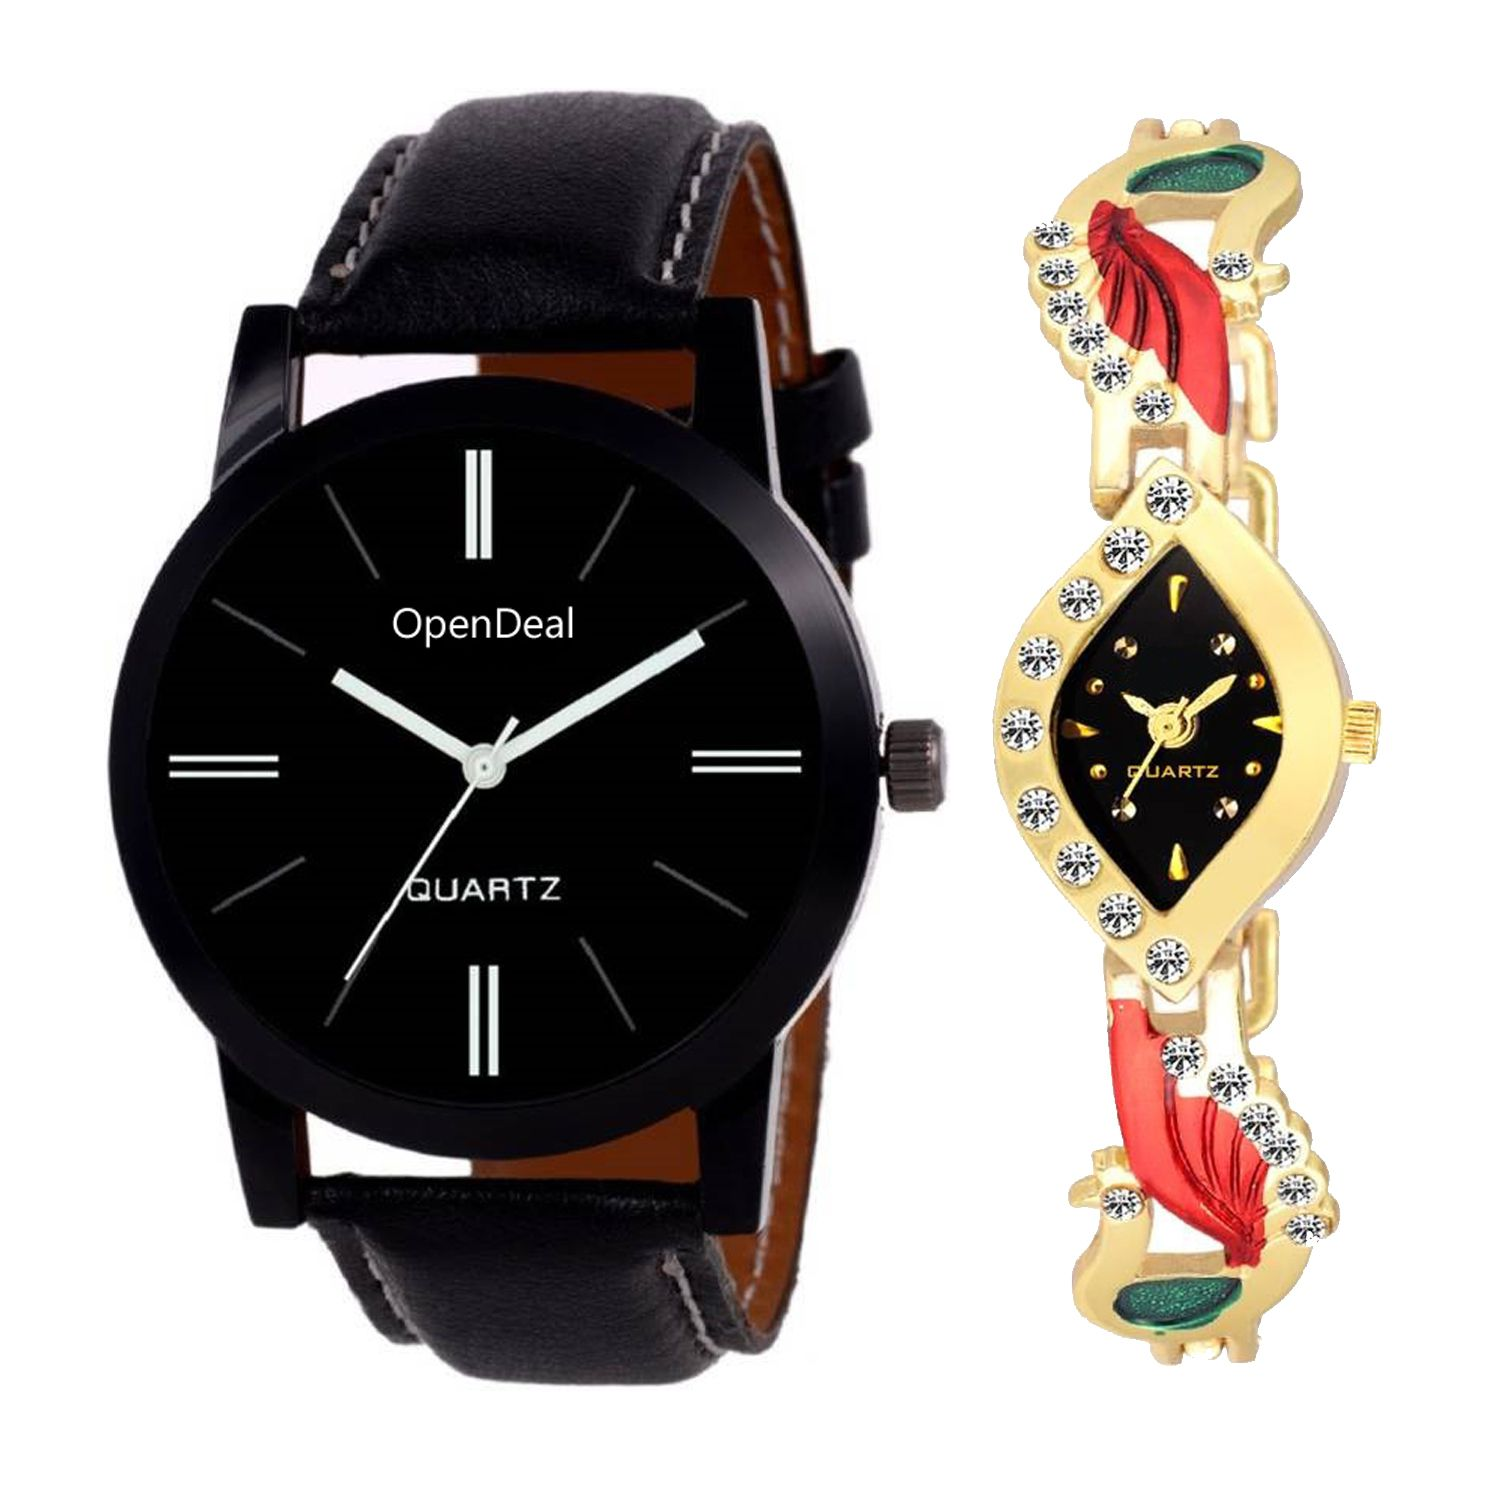 OD C2 055 New Arrival Stylish bo Couple Watch For Boys & Girls